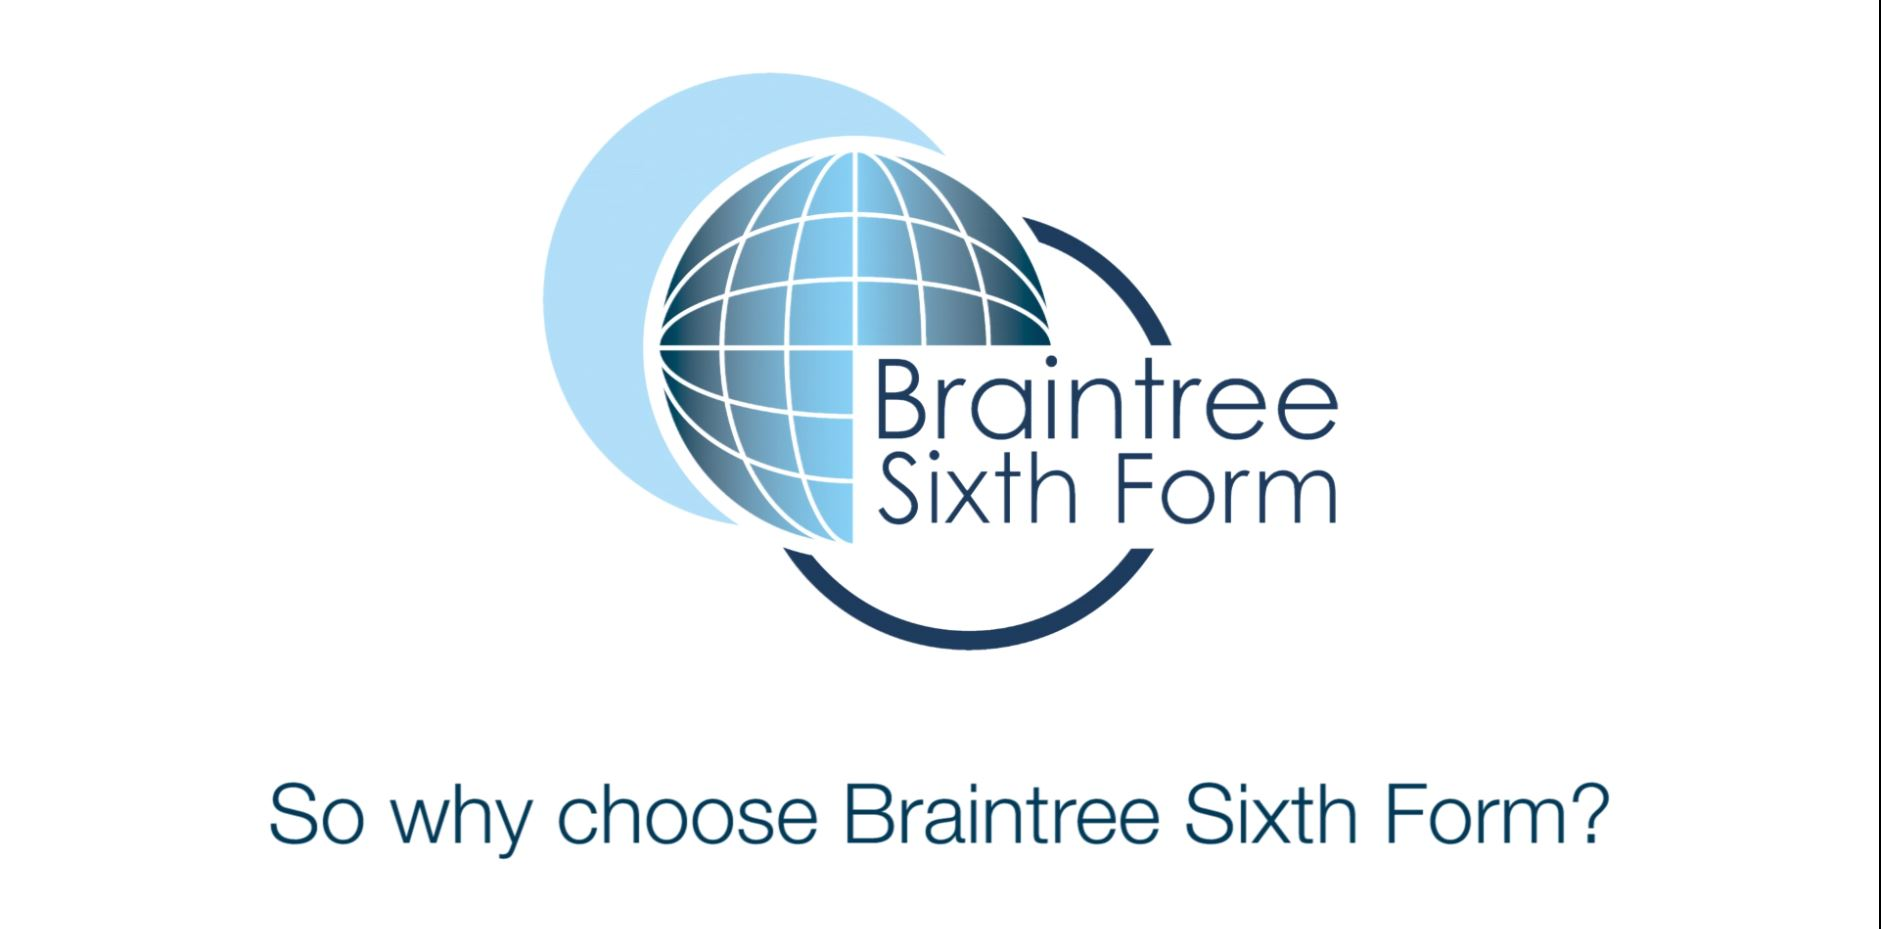 So why choose Braintree Sixth Form?